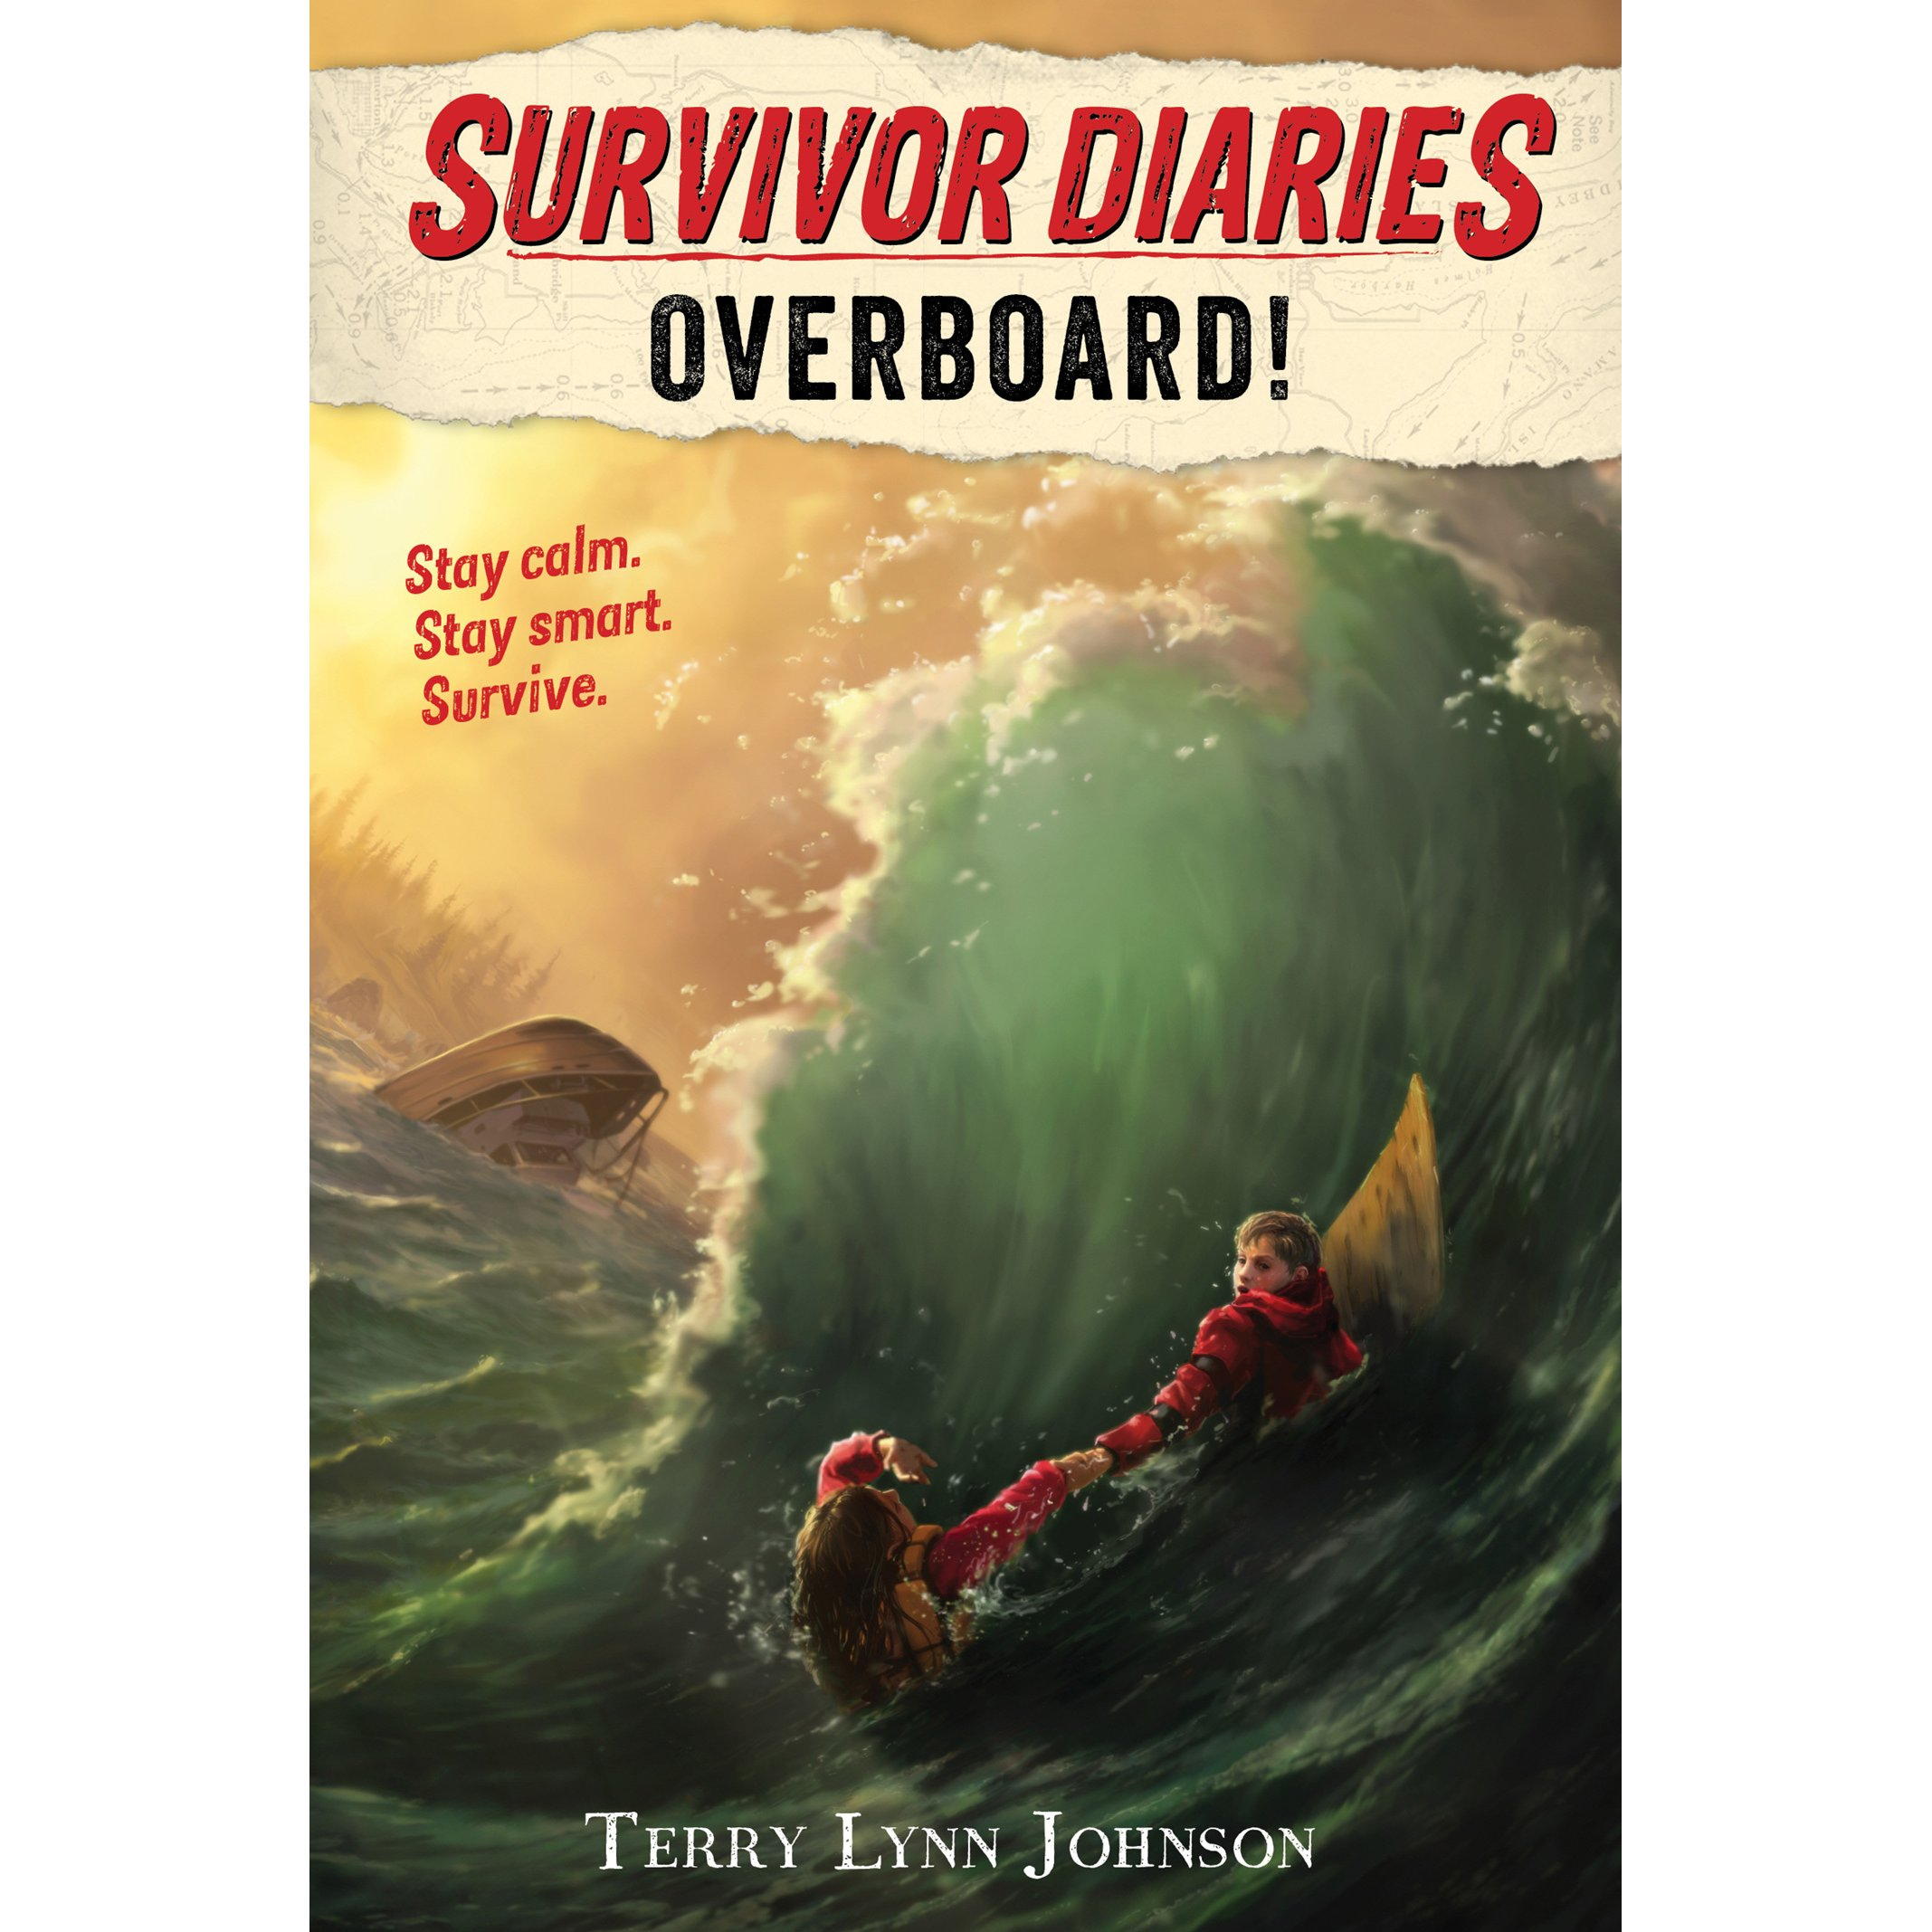 Survivor Diaries Overboard cover image